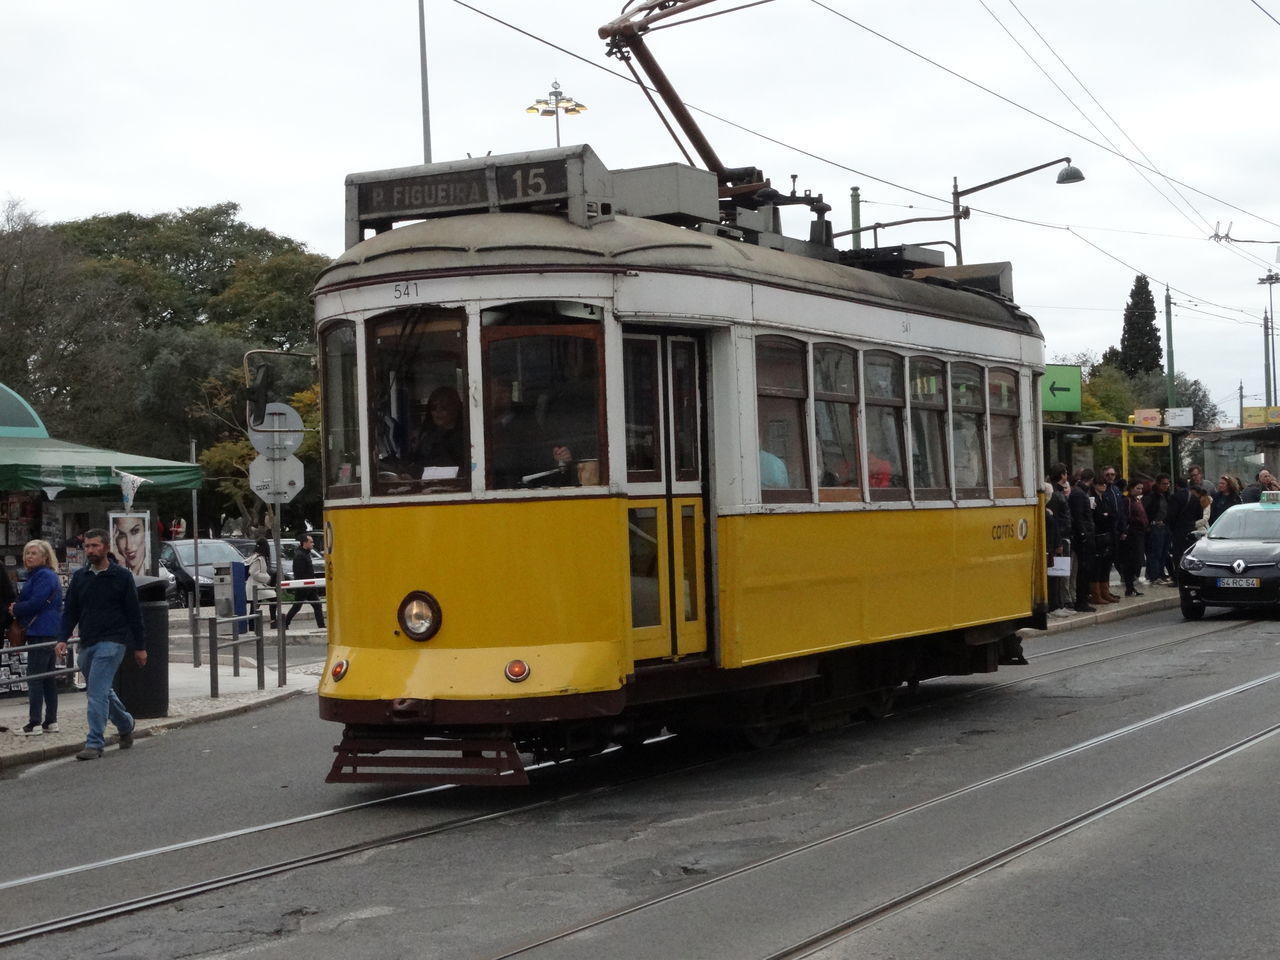 Adult Architecture Cable Car City Day Mode Of Transport Outdoors People Public Transportation Sky Transportation Travel Travel Destinations Yellow